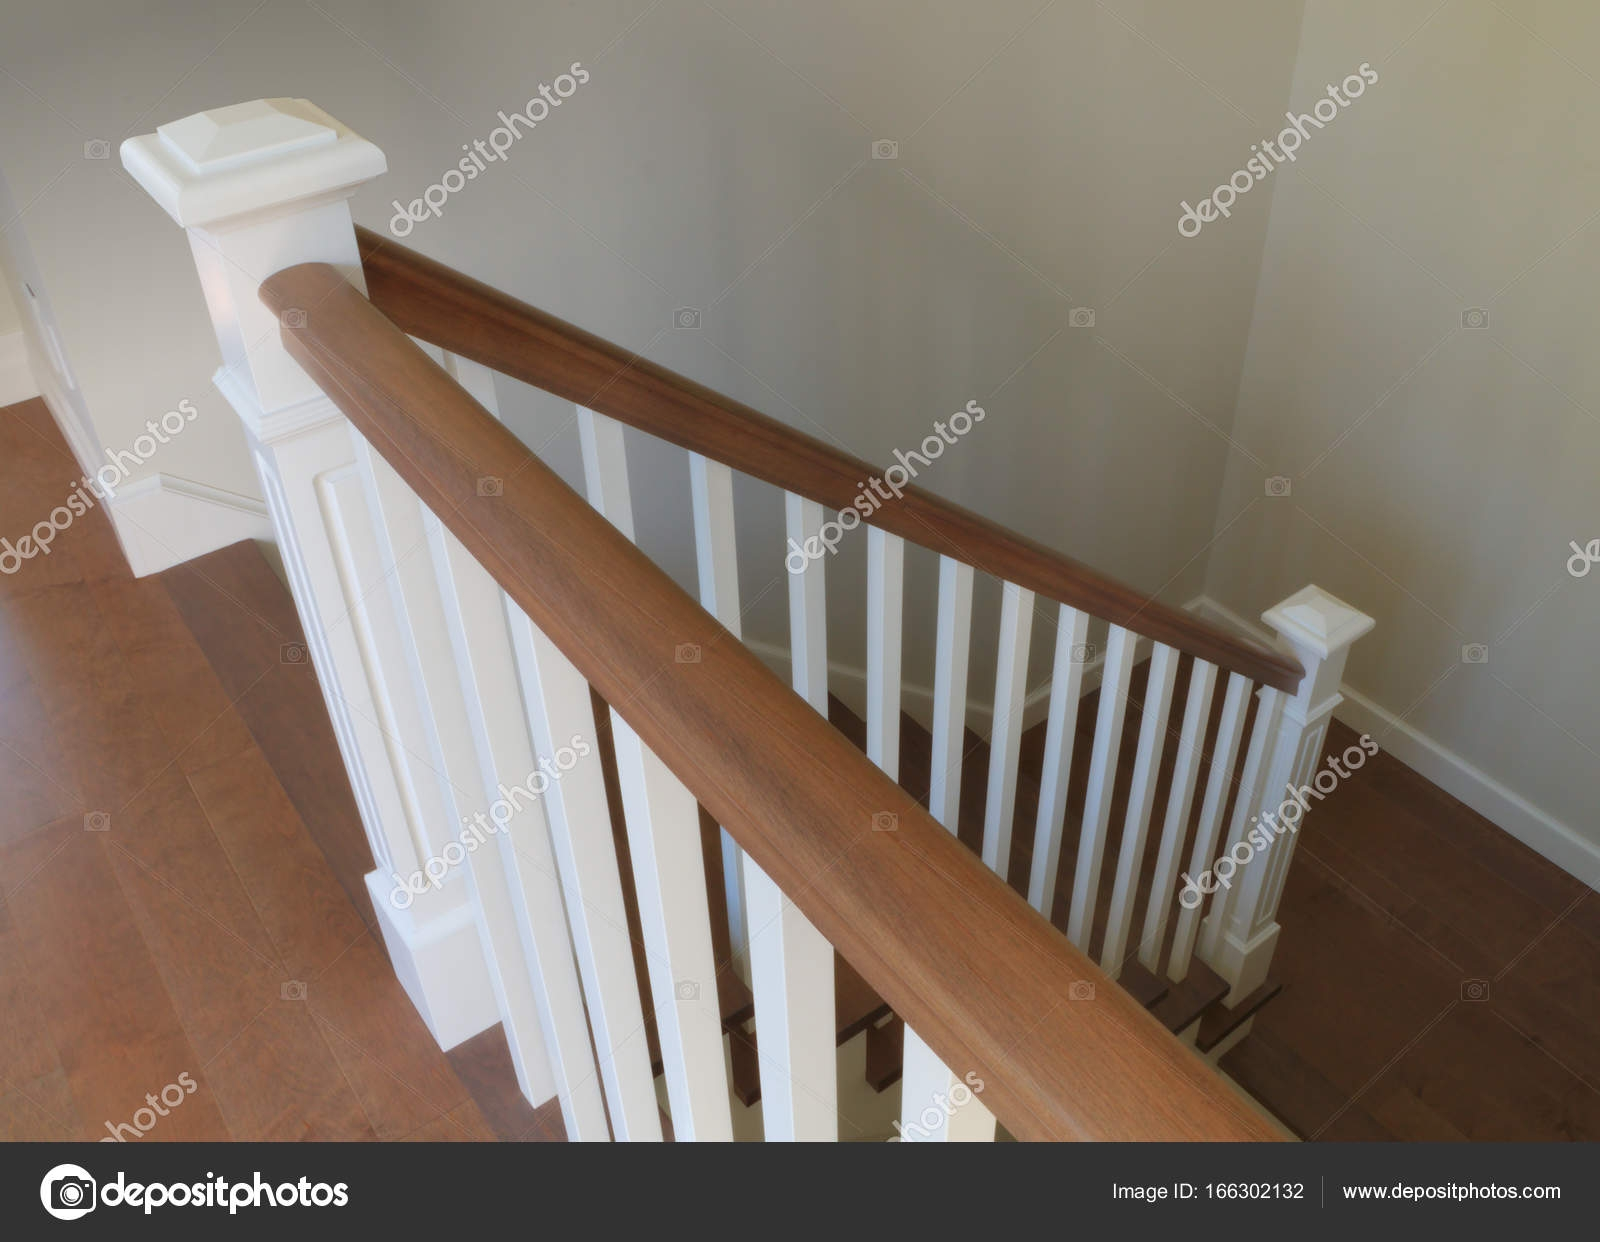 Pictures Handrails For Steps White Staircase Interior Classic | Wooden Handrails For Steps | Iron | Different Kind Wood | Wood Patio | Rustic | Staircase Wooden